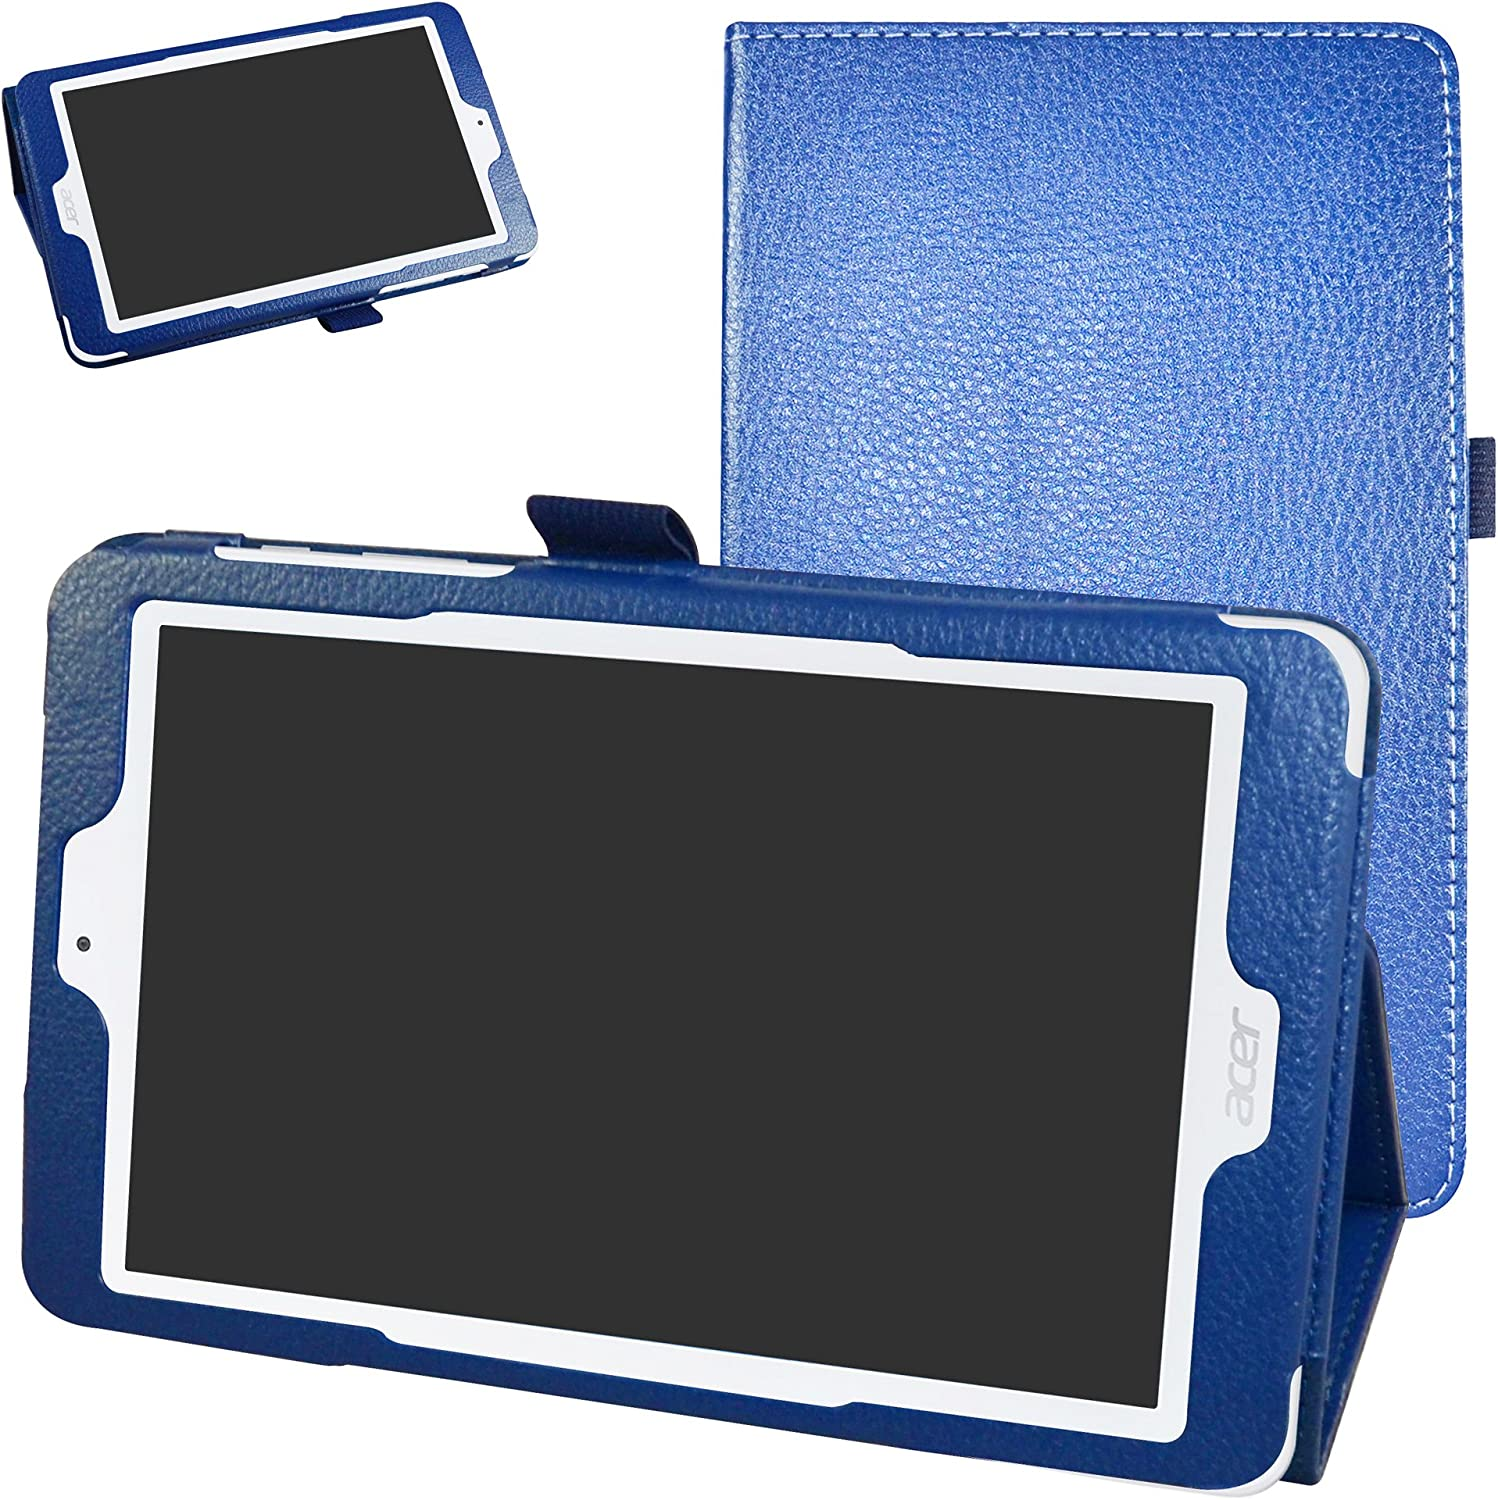 "Acer Iconia One 8 B1-850 Case,Mama Mouth PU Leather Folio 2-Folding Stand Cover with Stylus Holder for 8"" Acer Iconia One 8 B1-850 Android Tablet,Dark Blue"